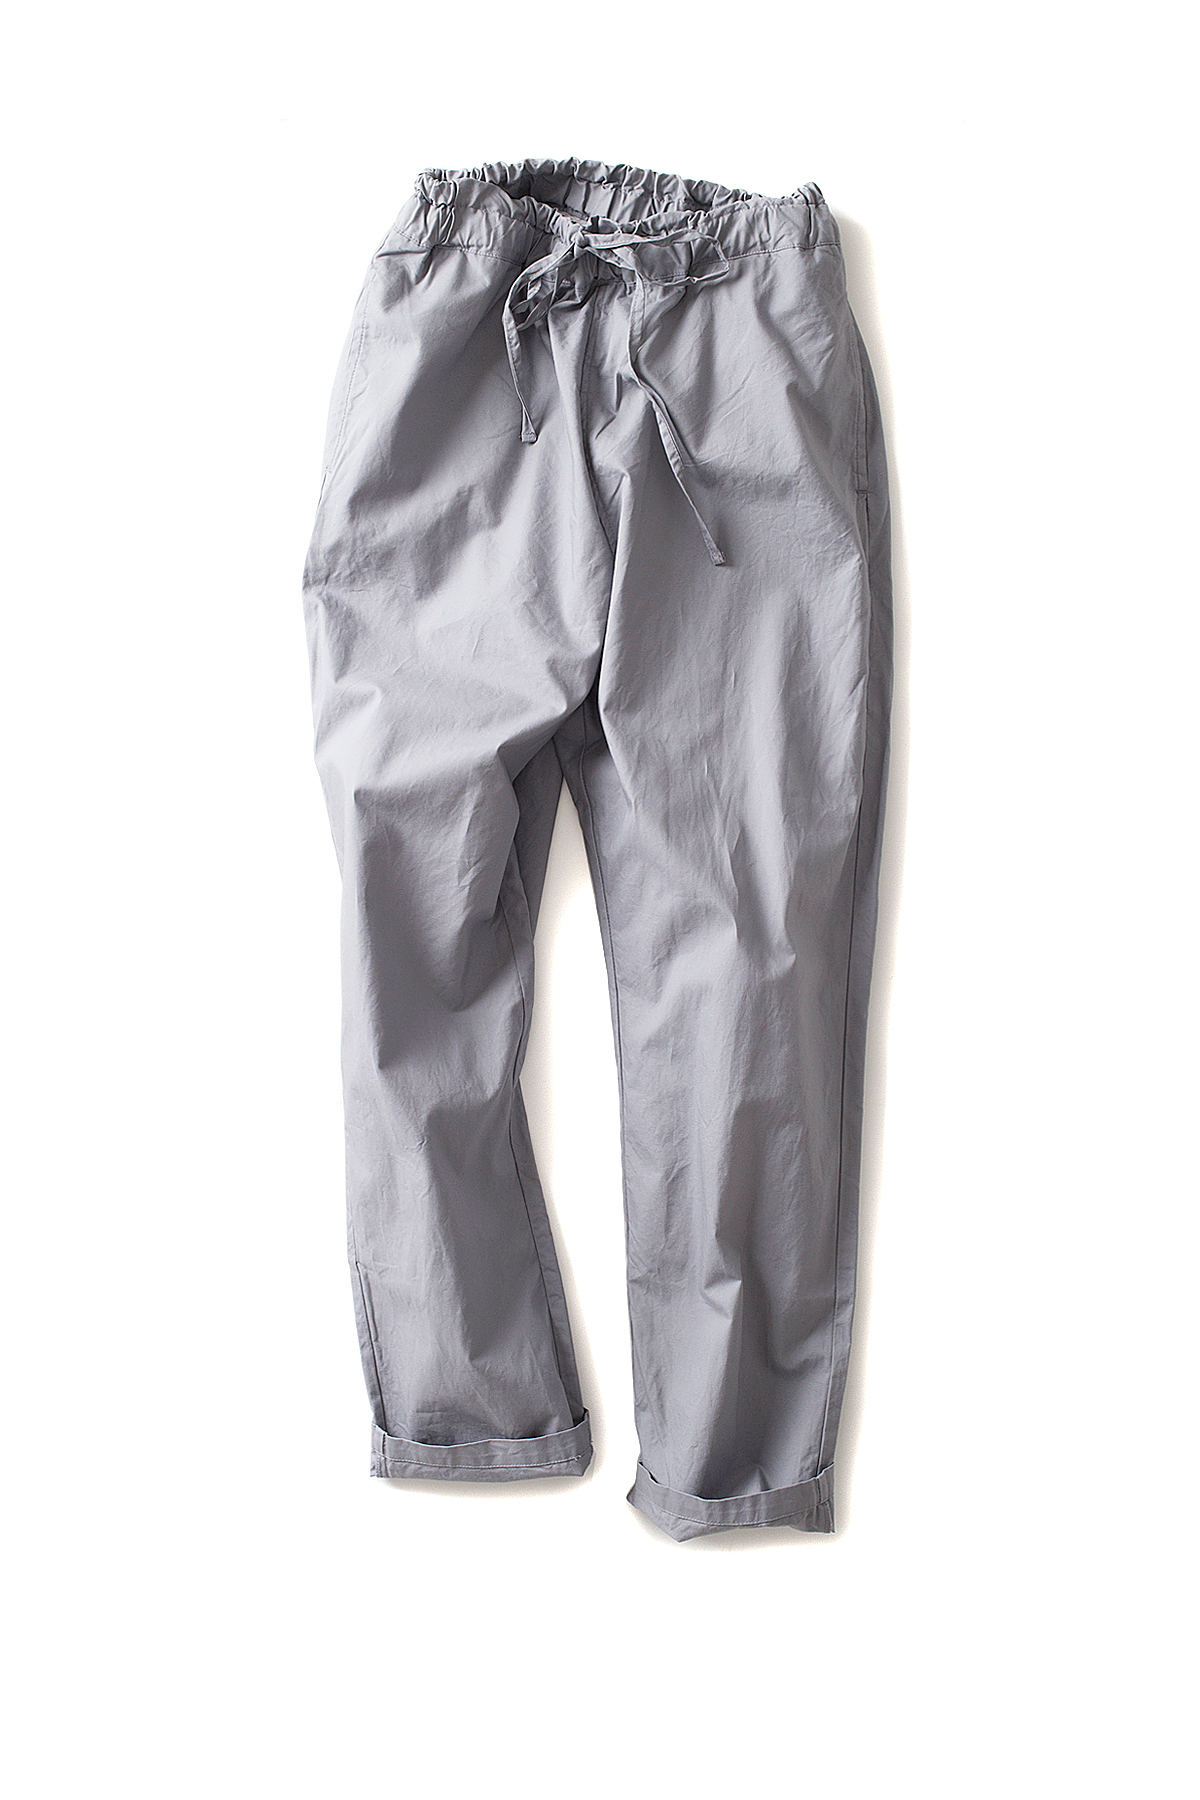 RINEN : Aligned Ox Easy Pants (Grey)